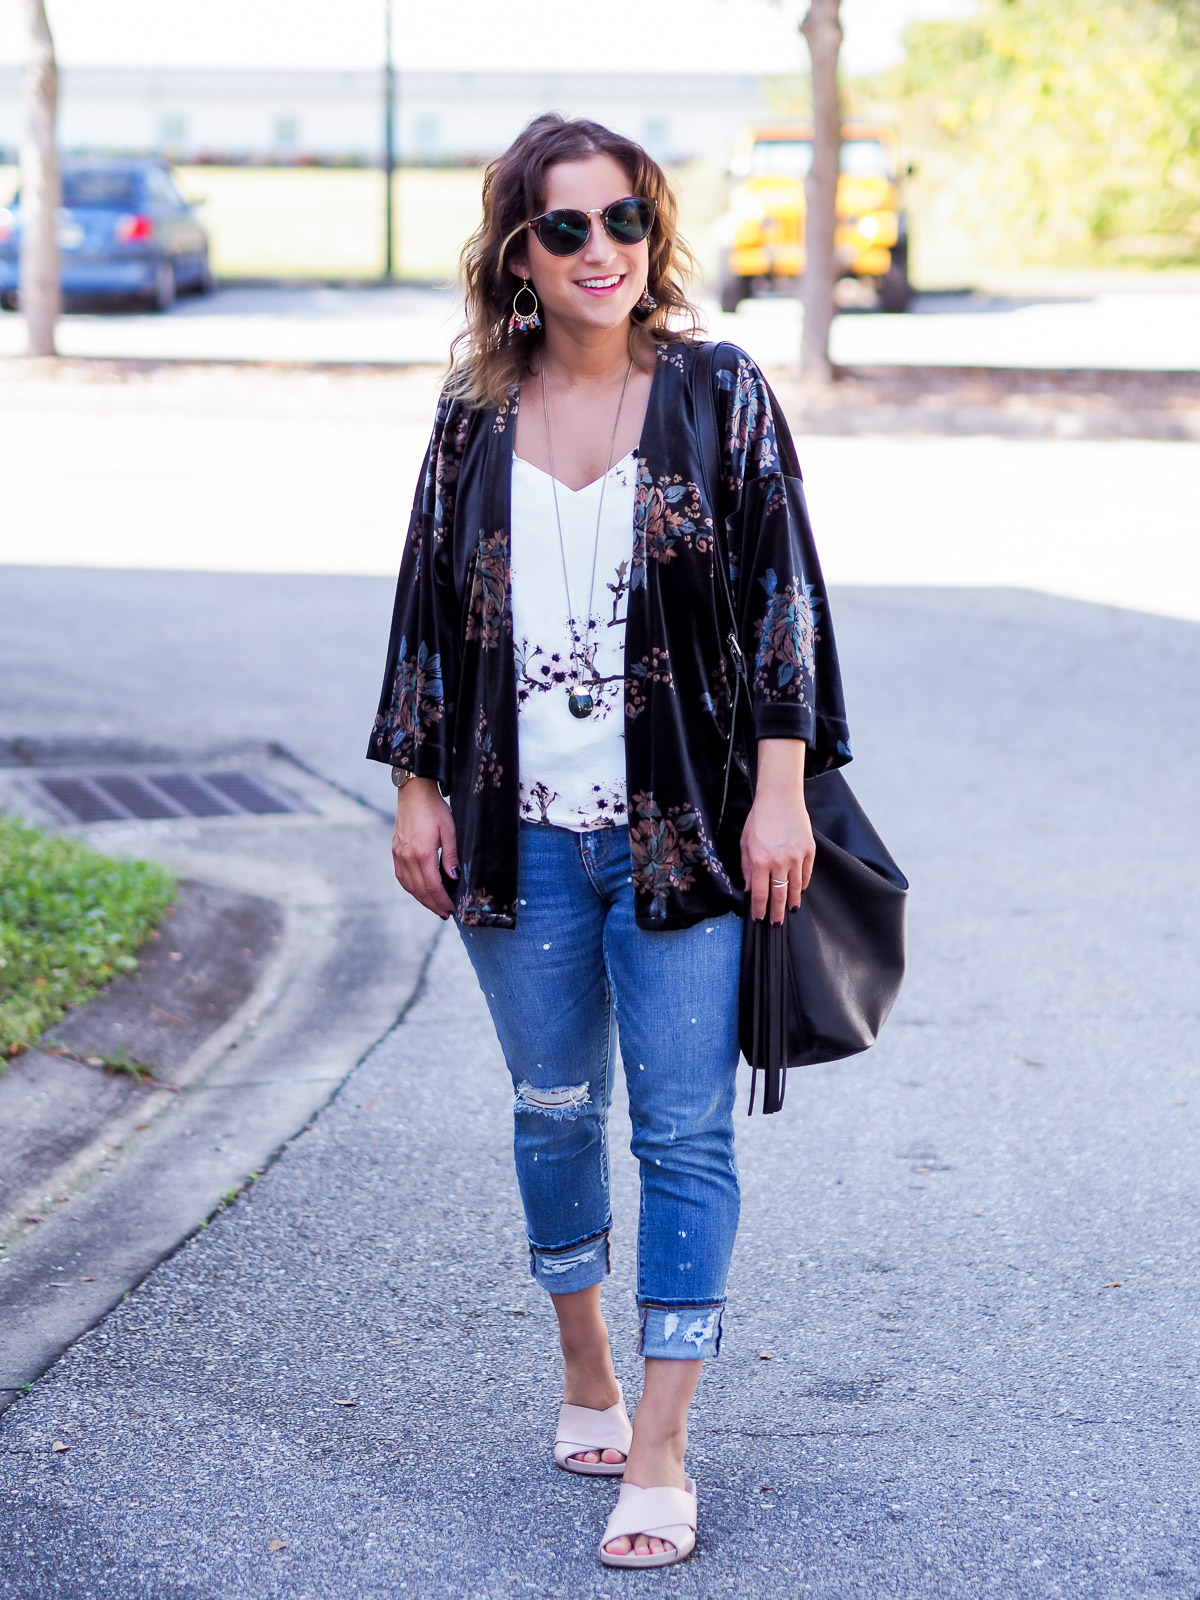 Floral velvet kimono from LOFT, with a floral tank and ripped jeans from Gap